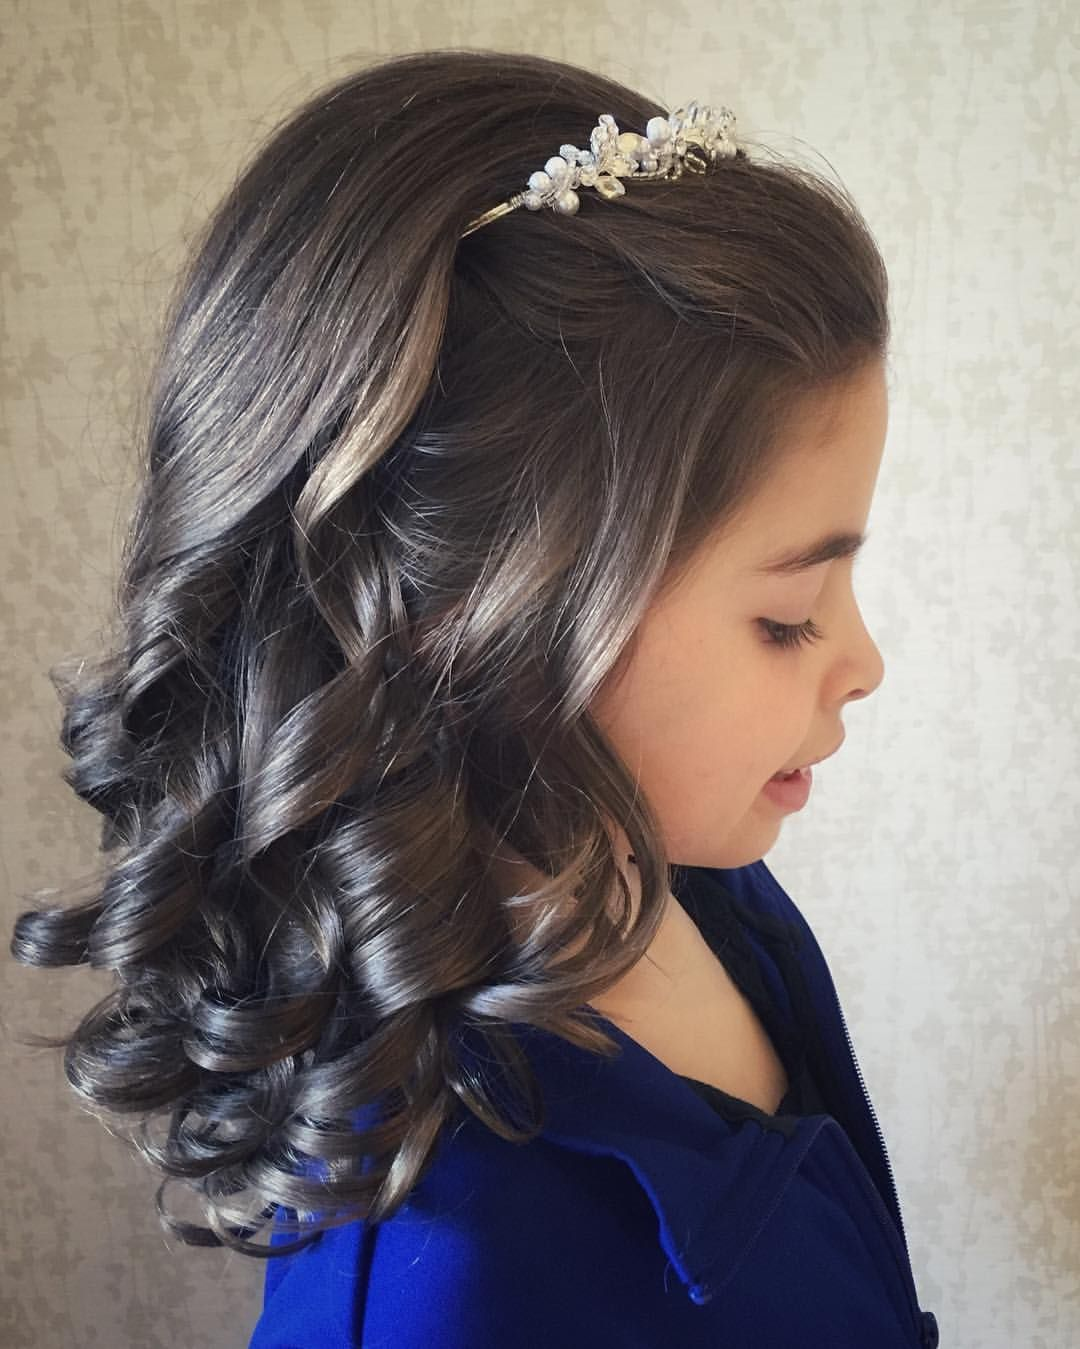 Practical Hairstyles For Moms First Communion Hairstyles Festive Hairstyles For Little Girls